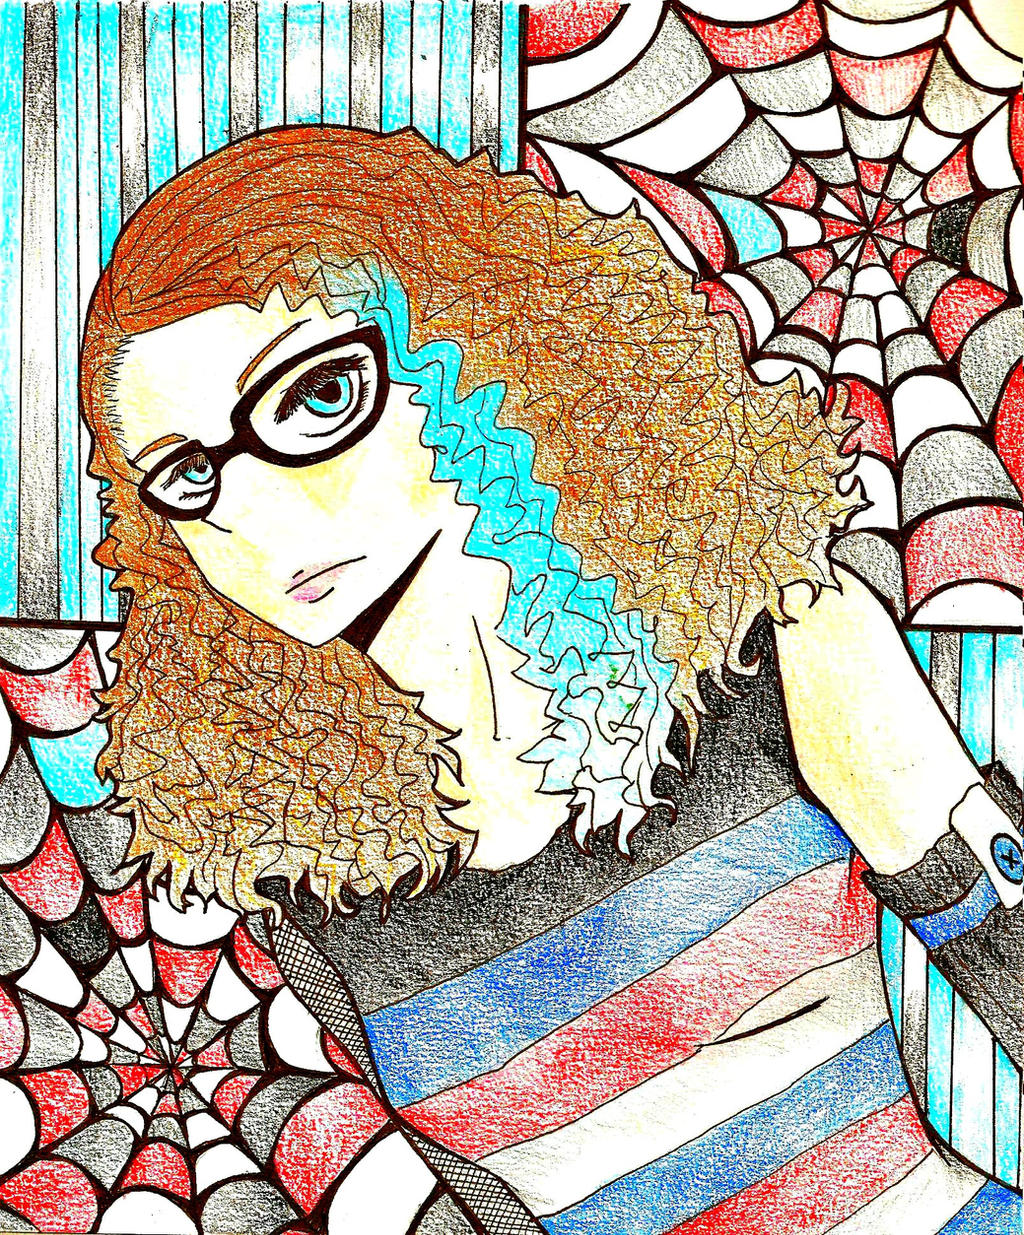 HBD Chick With Curly Hair and Spider Webs by bnha